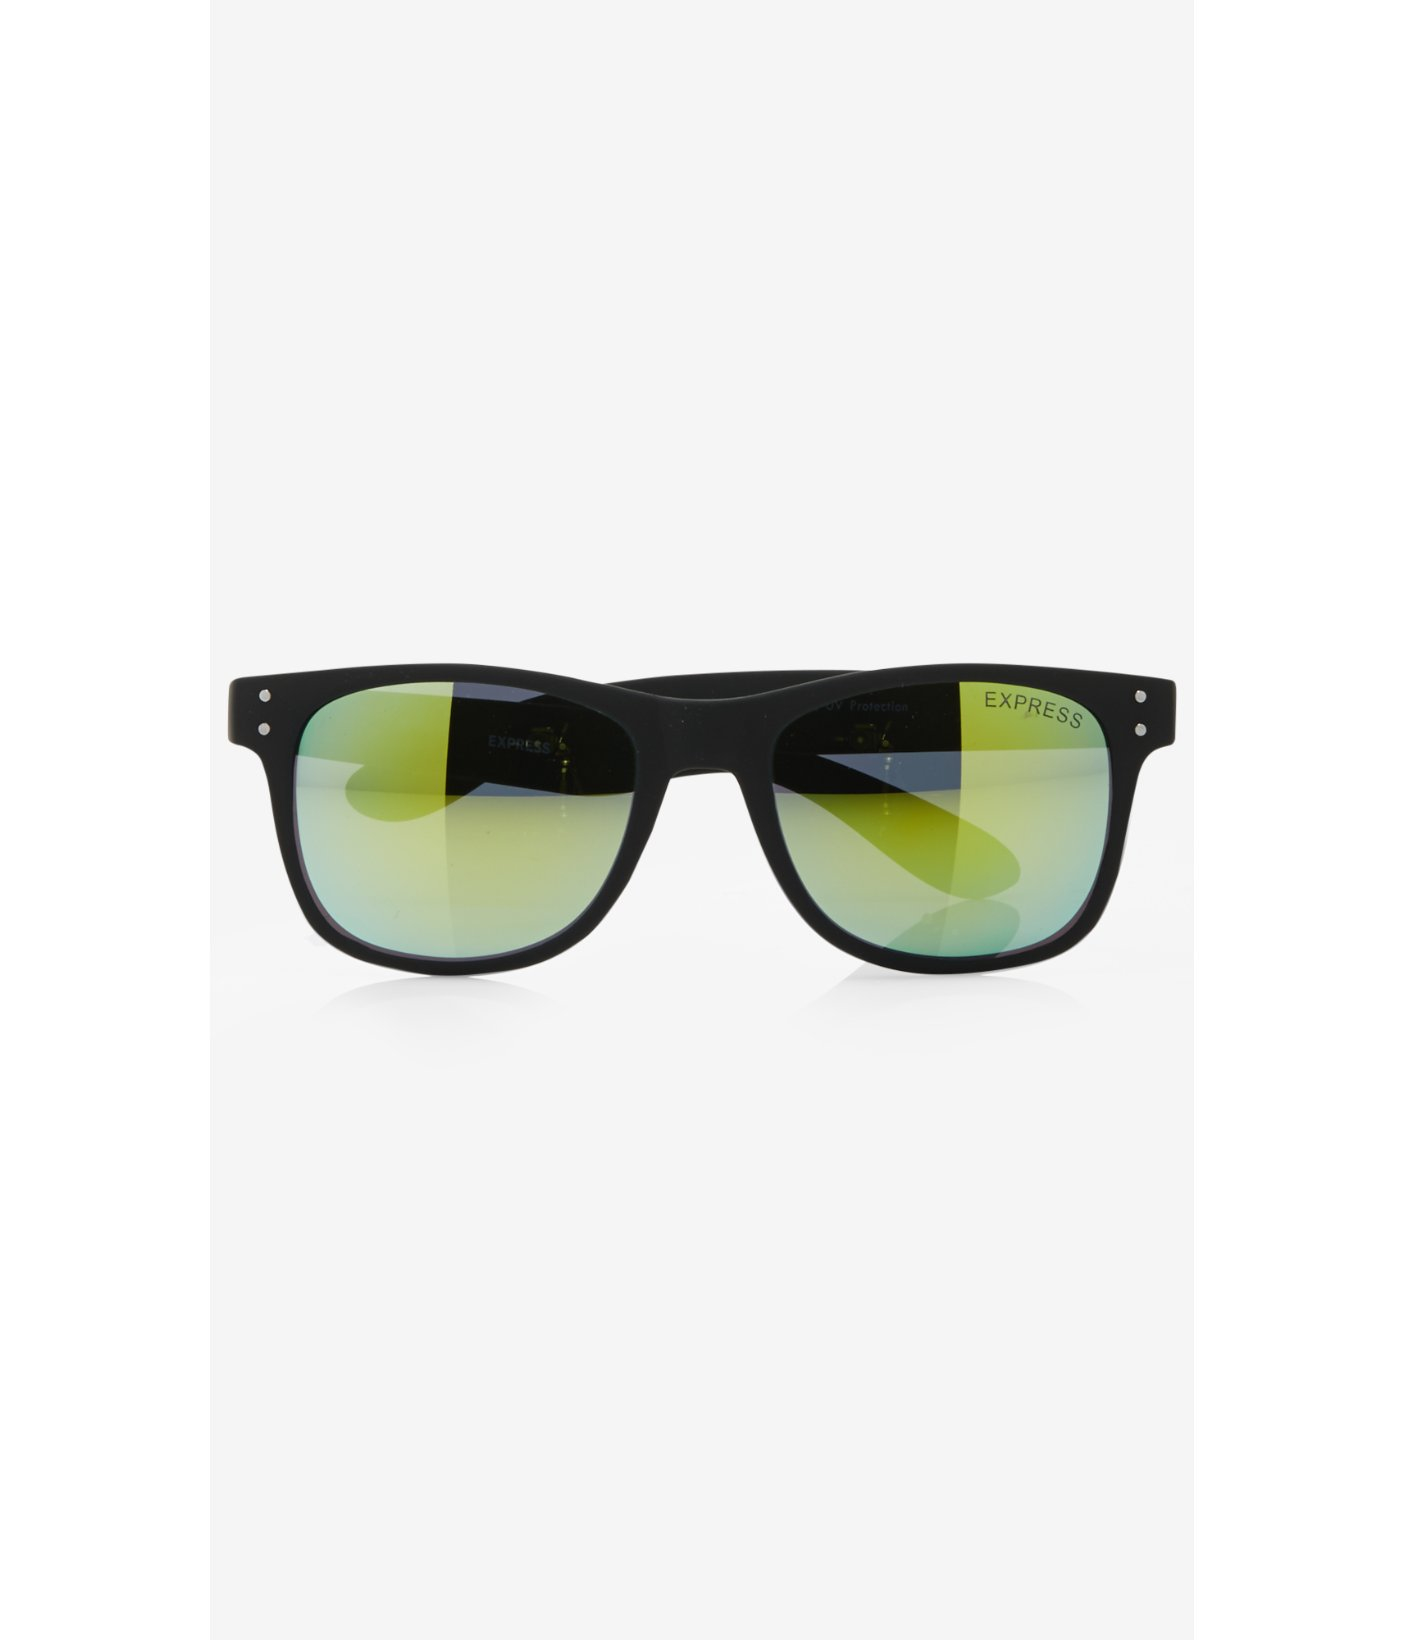 92887735b7 Lyst - Express Green Mirrored Matte Square Sunglasses in Black for Men